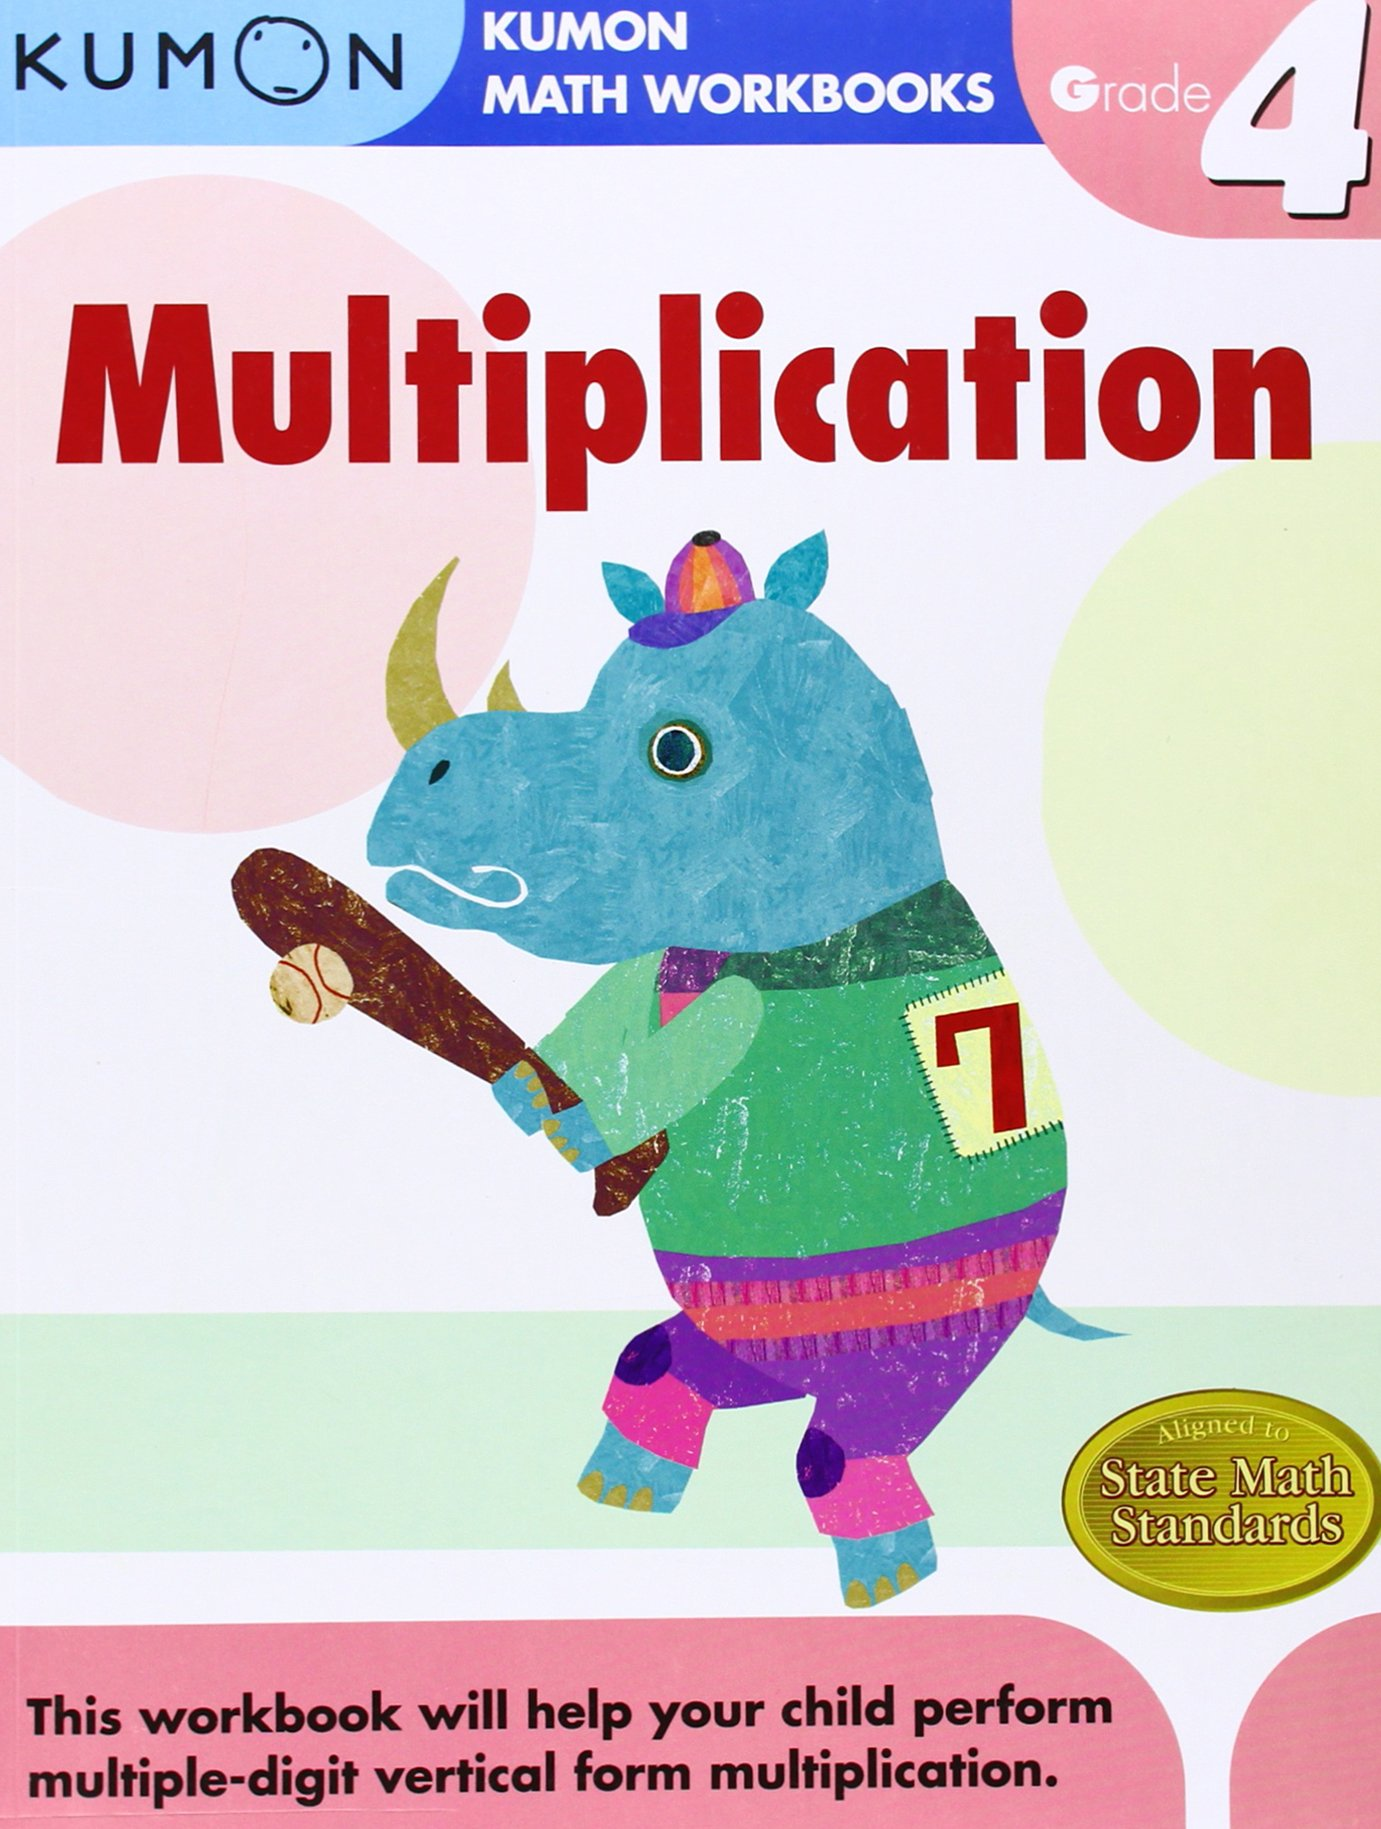 Grade 4 Multiplication (Kumon Math Workbooks): Kumon Publishing ...